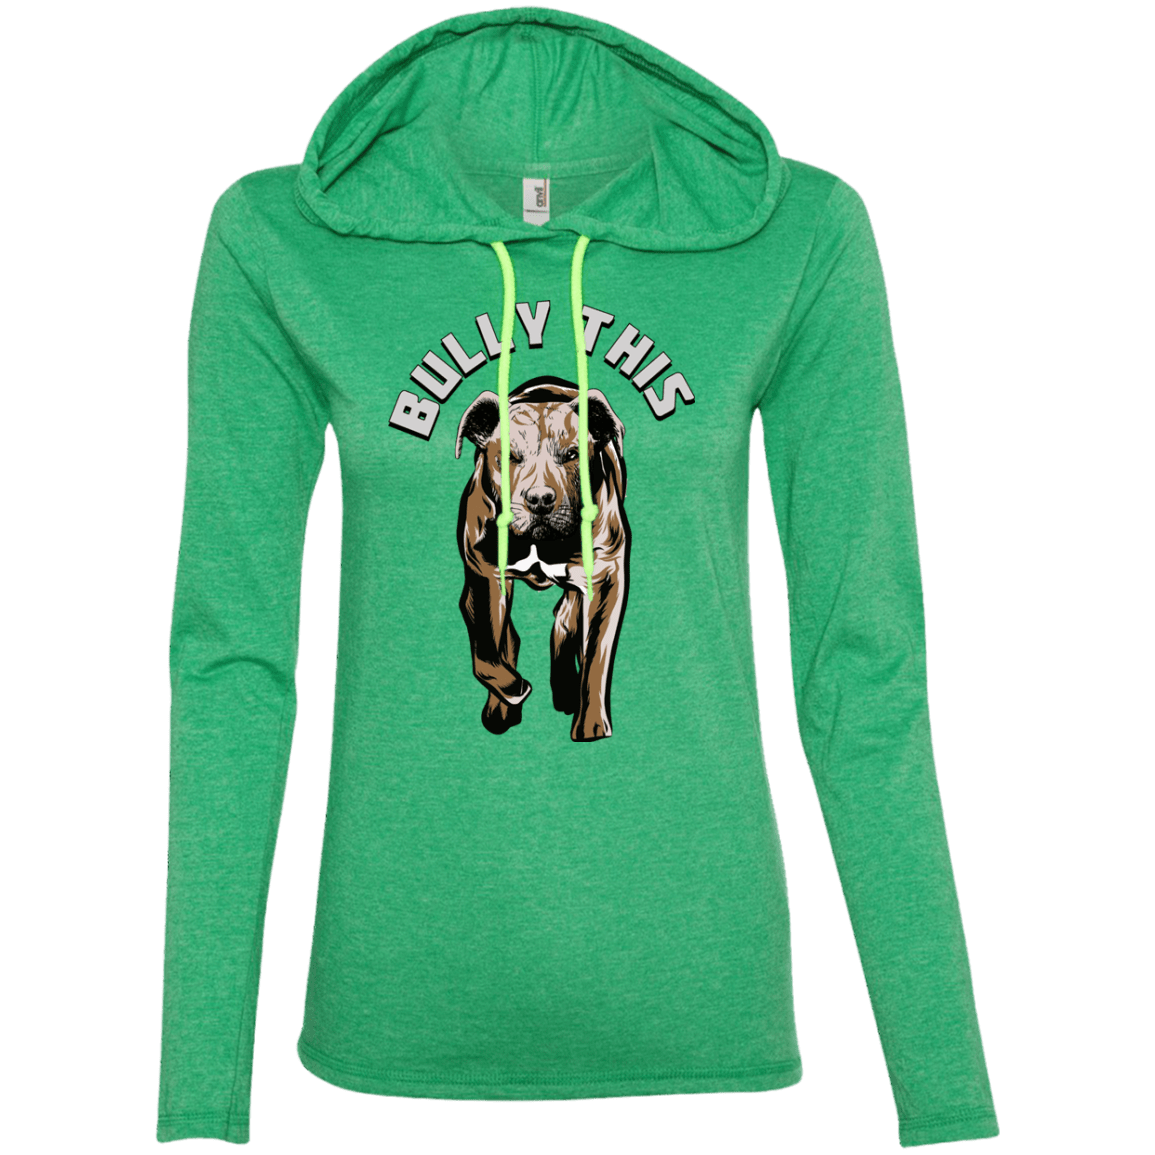 Bully This! - 887L Anvil Ladies' LS T-Shirt Hoodie Heather Green/Neon Yellow Small - Little Pit Shop